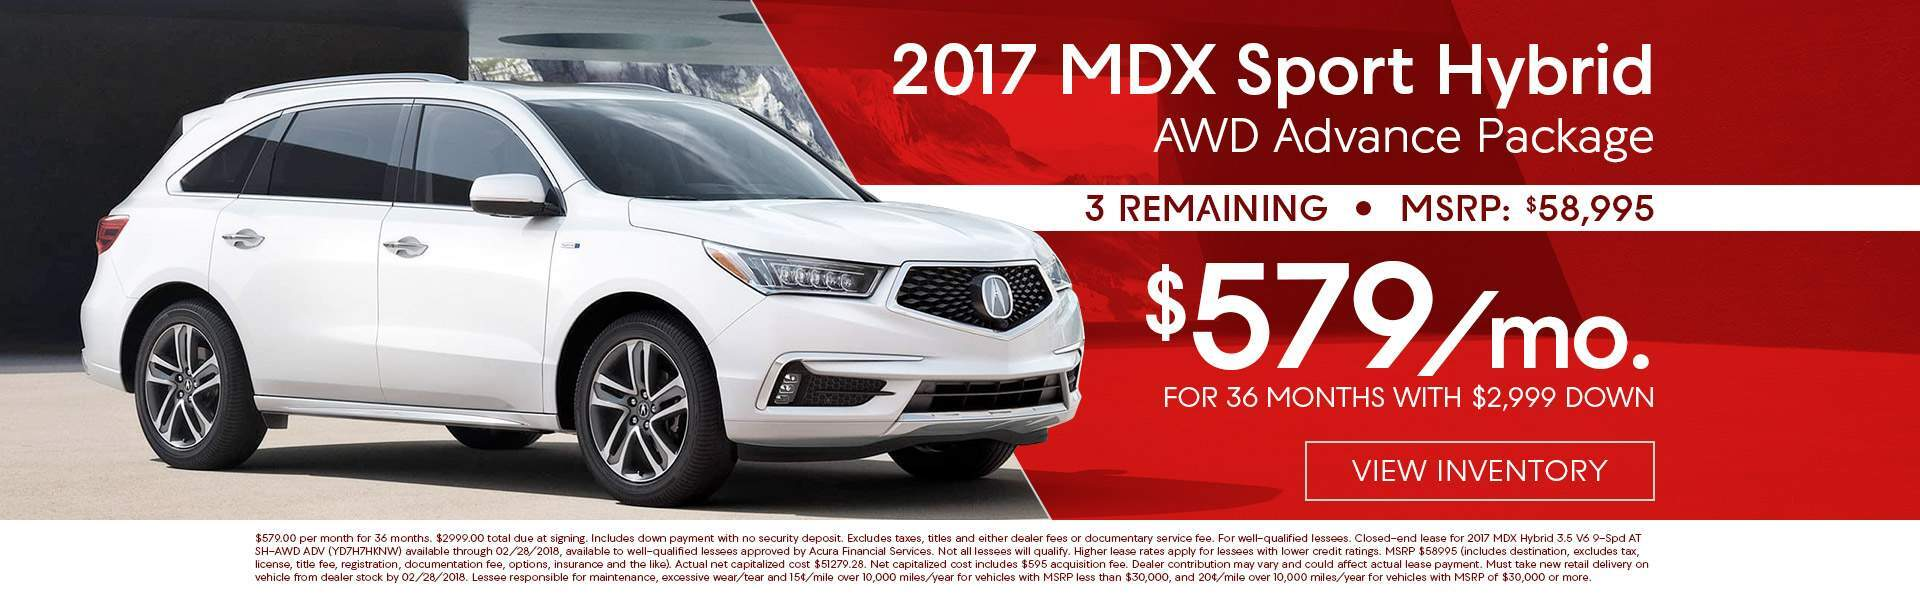 2017 Acura MDX Sport Hybrid AWD Advance Package